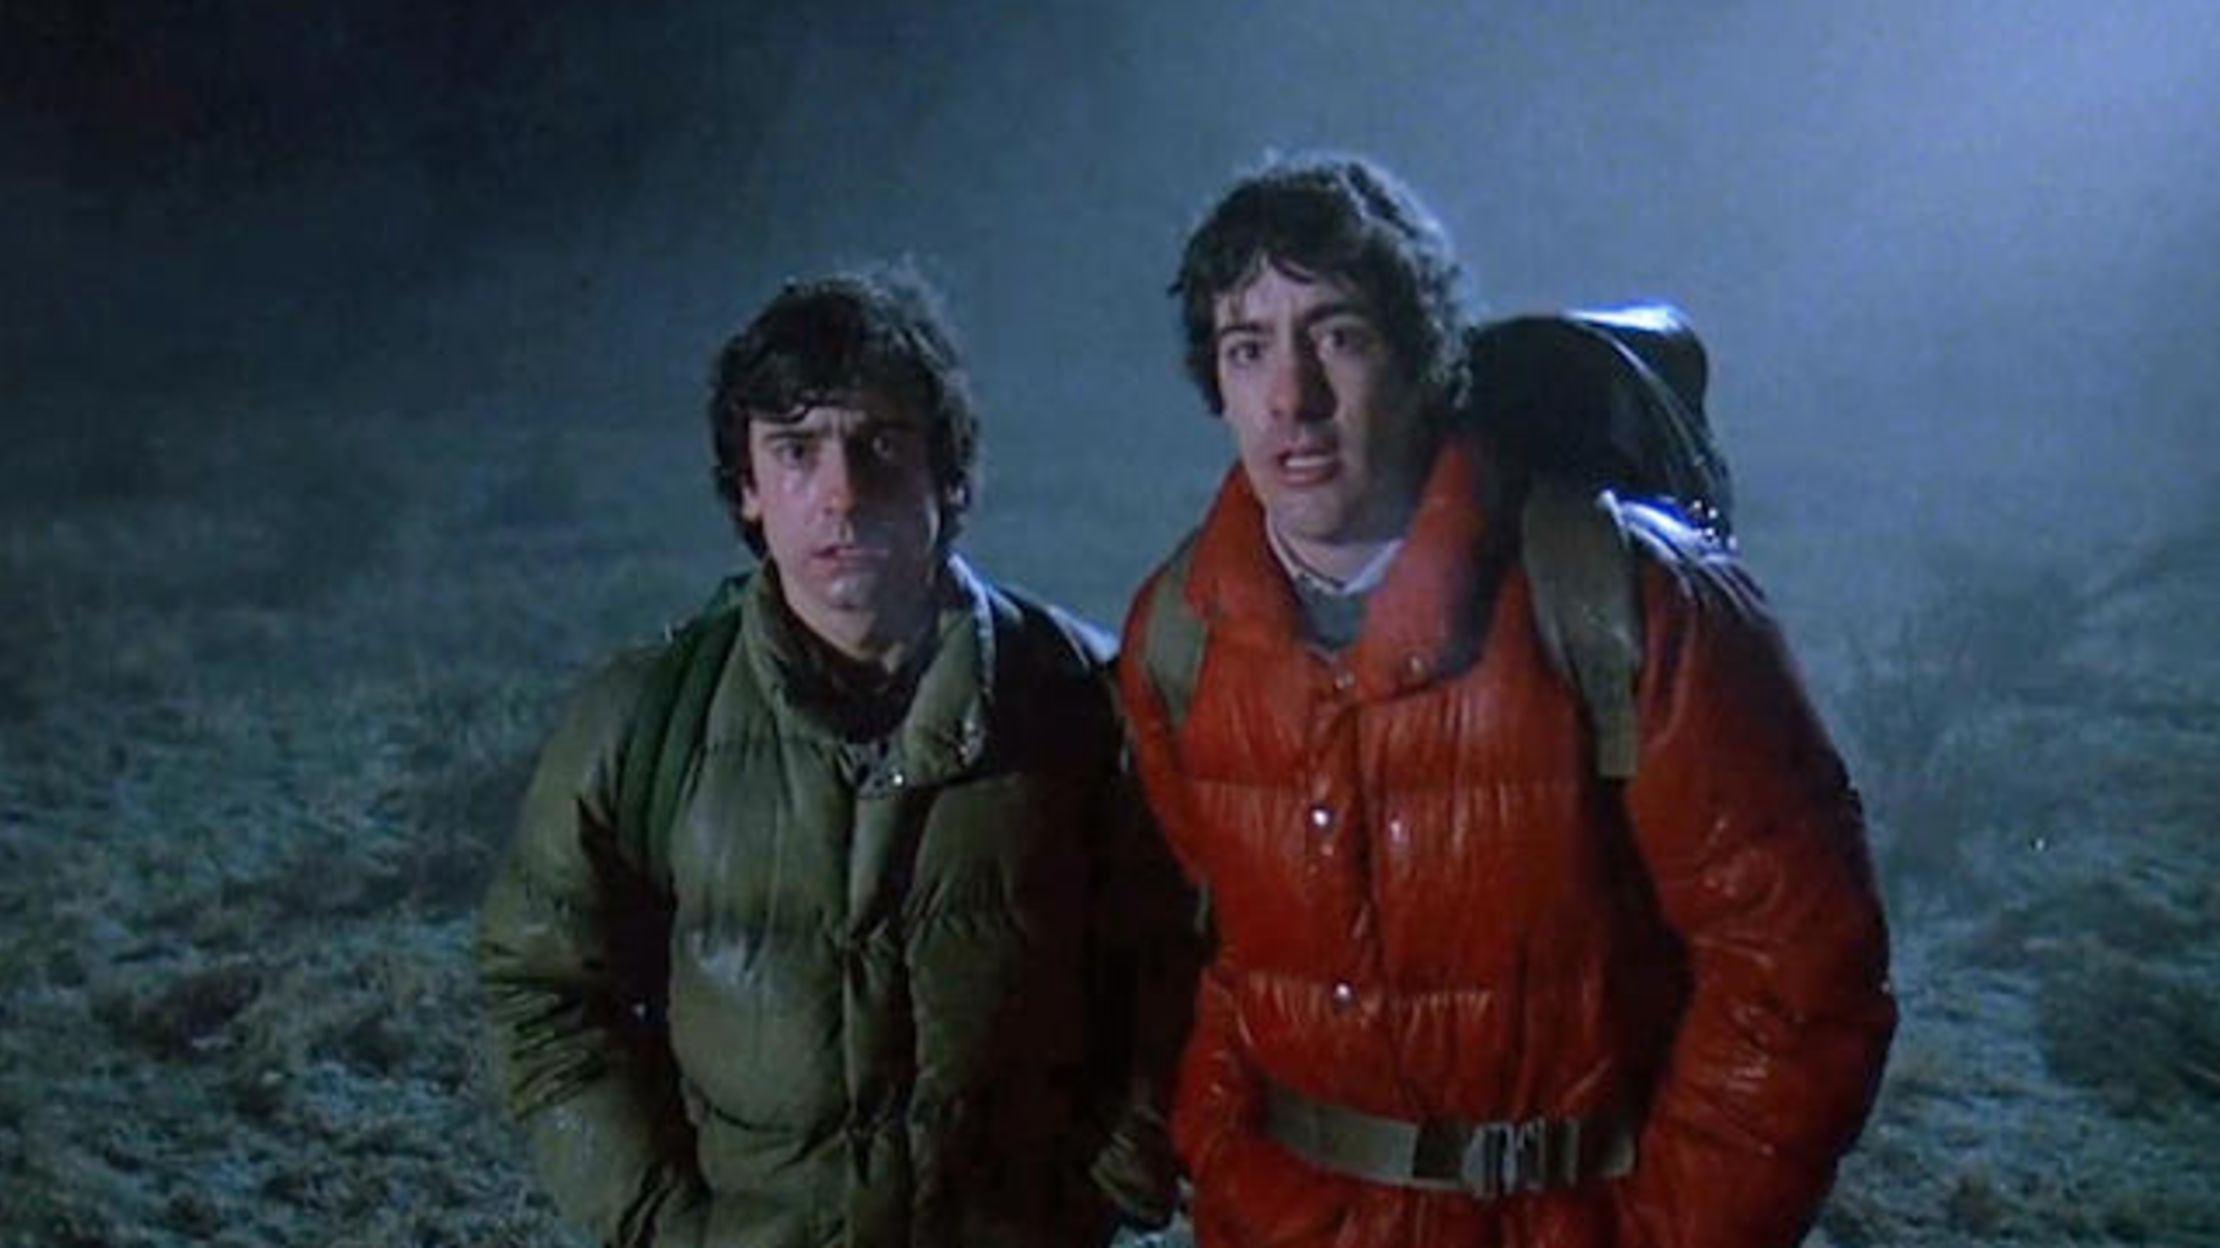 15 Facts About 'An American Werewolf in London' | Mental Floss